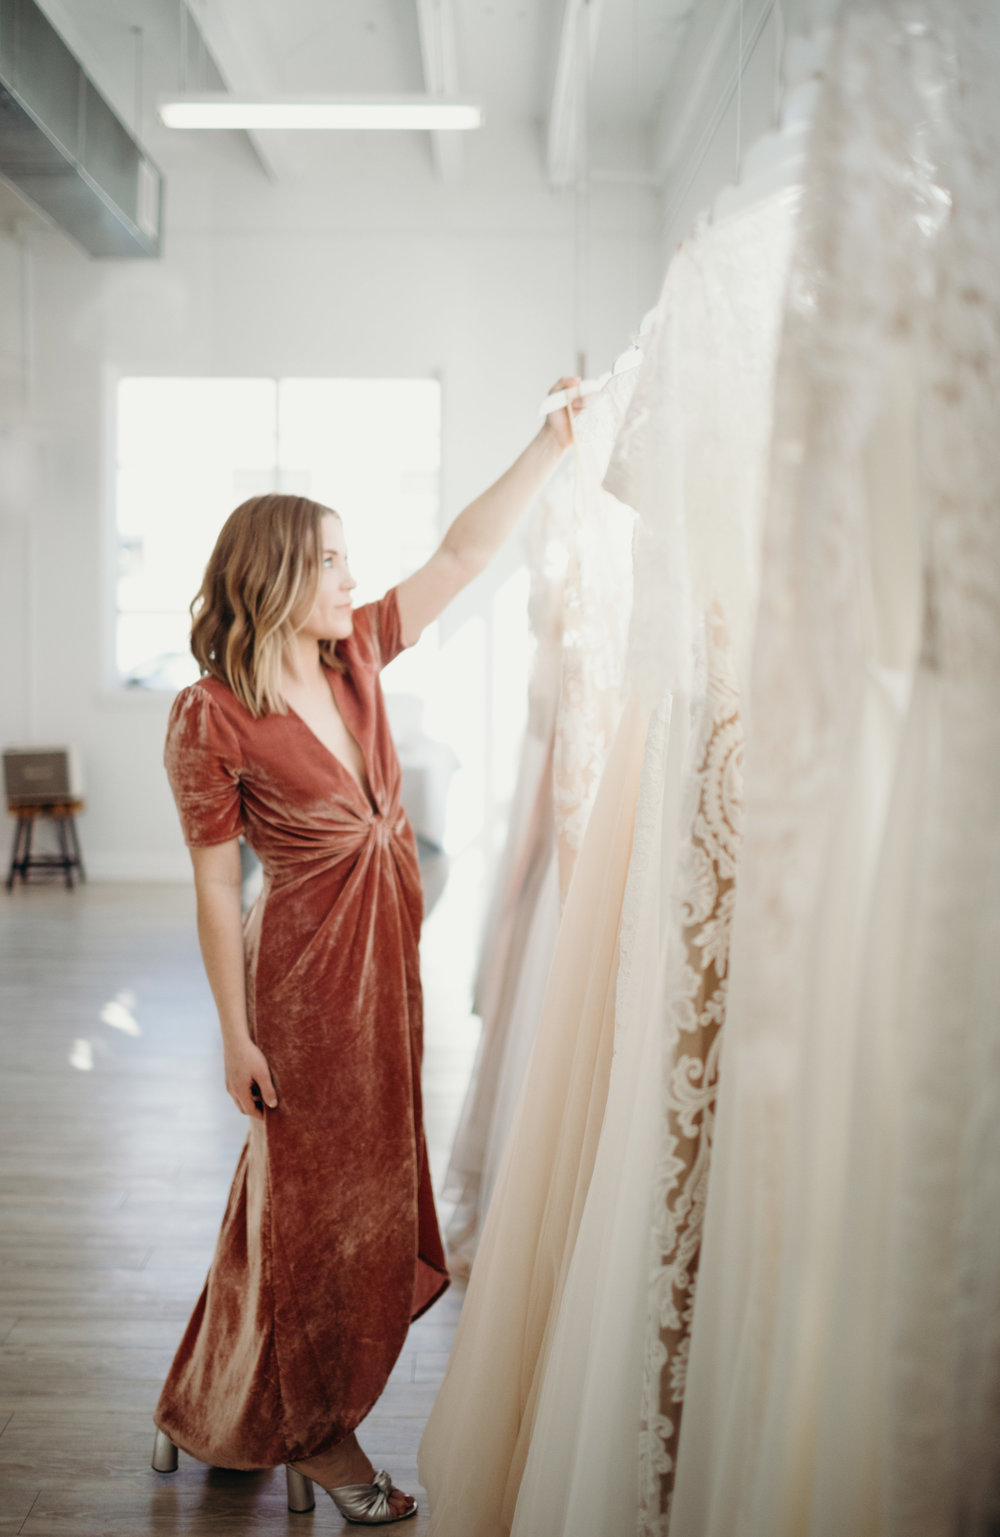 - HEY GUYS!AFTER WORKING FOR A BRIDAL DESIGNER & TRAVELING SO MUCH THAT NYC  PRETTY MUCH BECAME MY SECOND HOME. I FELL HARD FOR THE  MODERN SHOP MOVEMENT & COULDN'T WAIT TO BRING THE MOST UP & COMING, CREATIVE & PASSIONATE CITY AKA KC AN ALTERNATIVE TAKE ON BRIDAL.I CAN'T WAIT TO MEET YOU!   XX LAURA ROURKE ,  OWNER / CURATOR